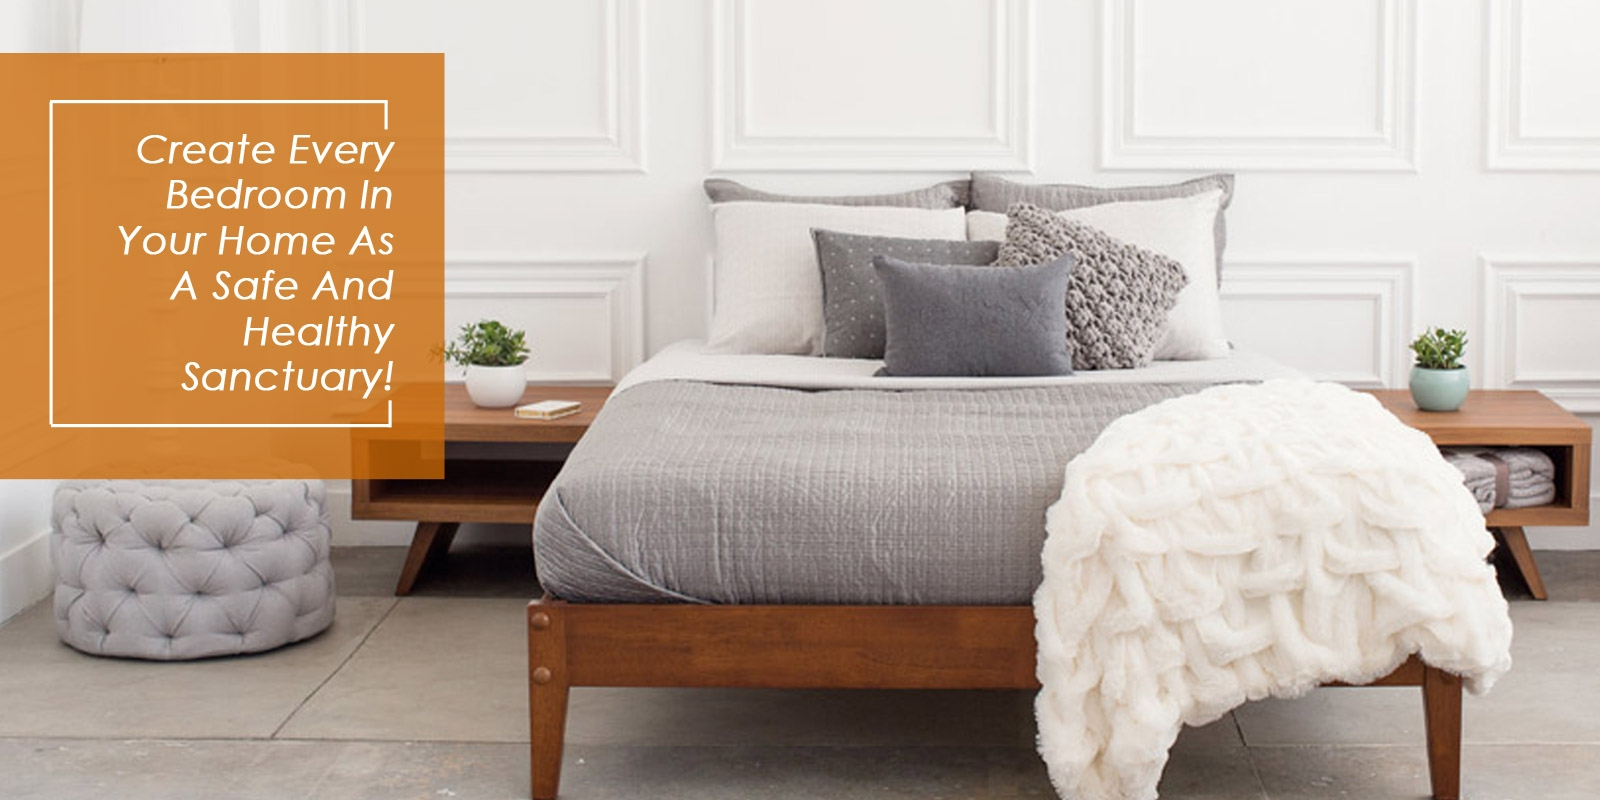 Create Every Bedroom In Your Home As A Safe And Healthy Sanctuary